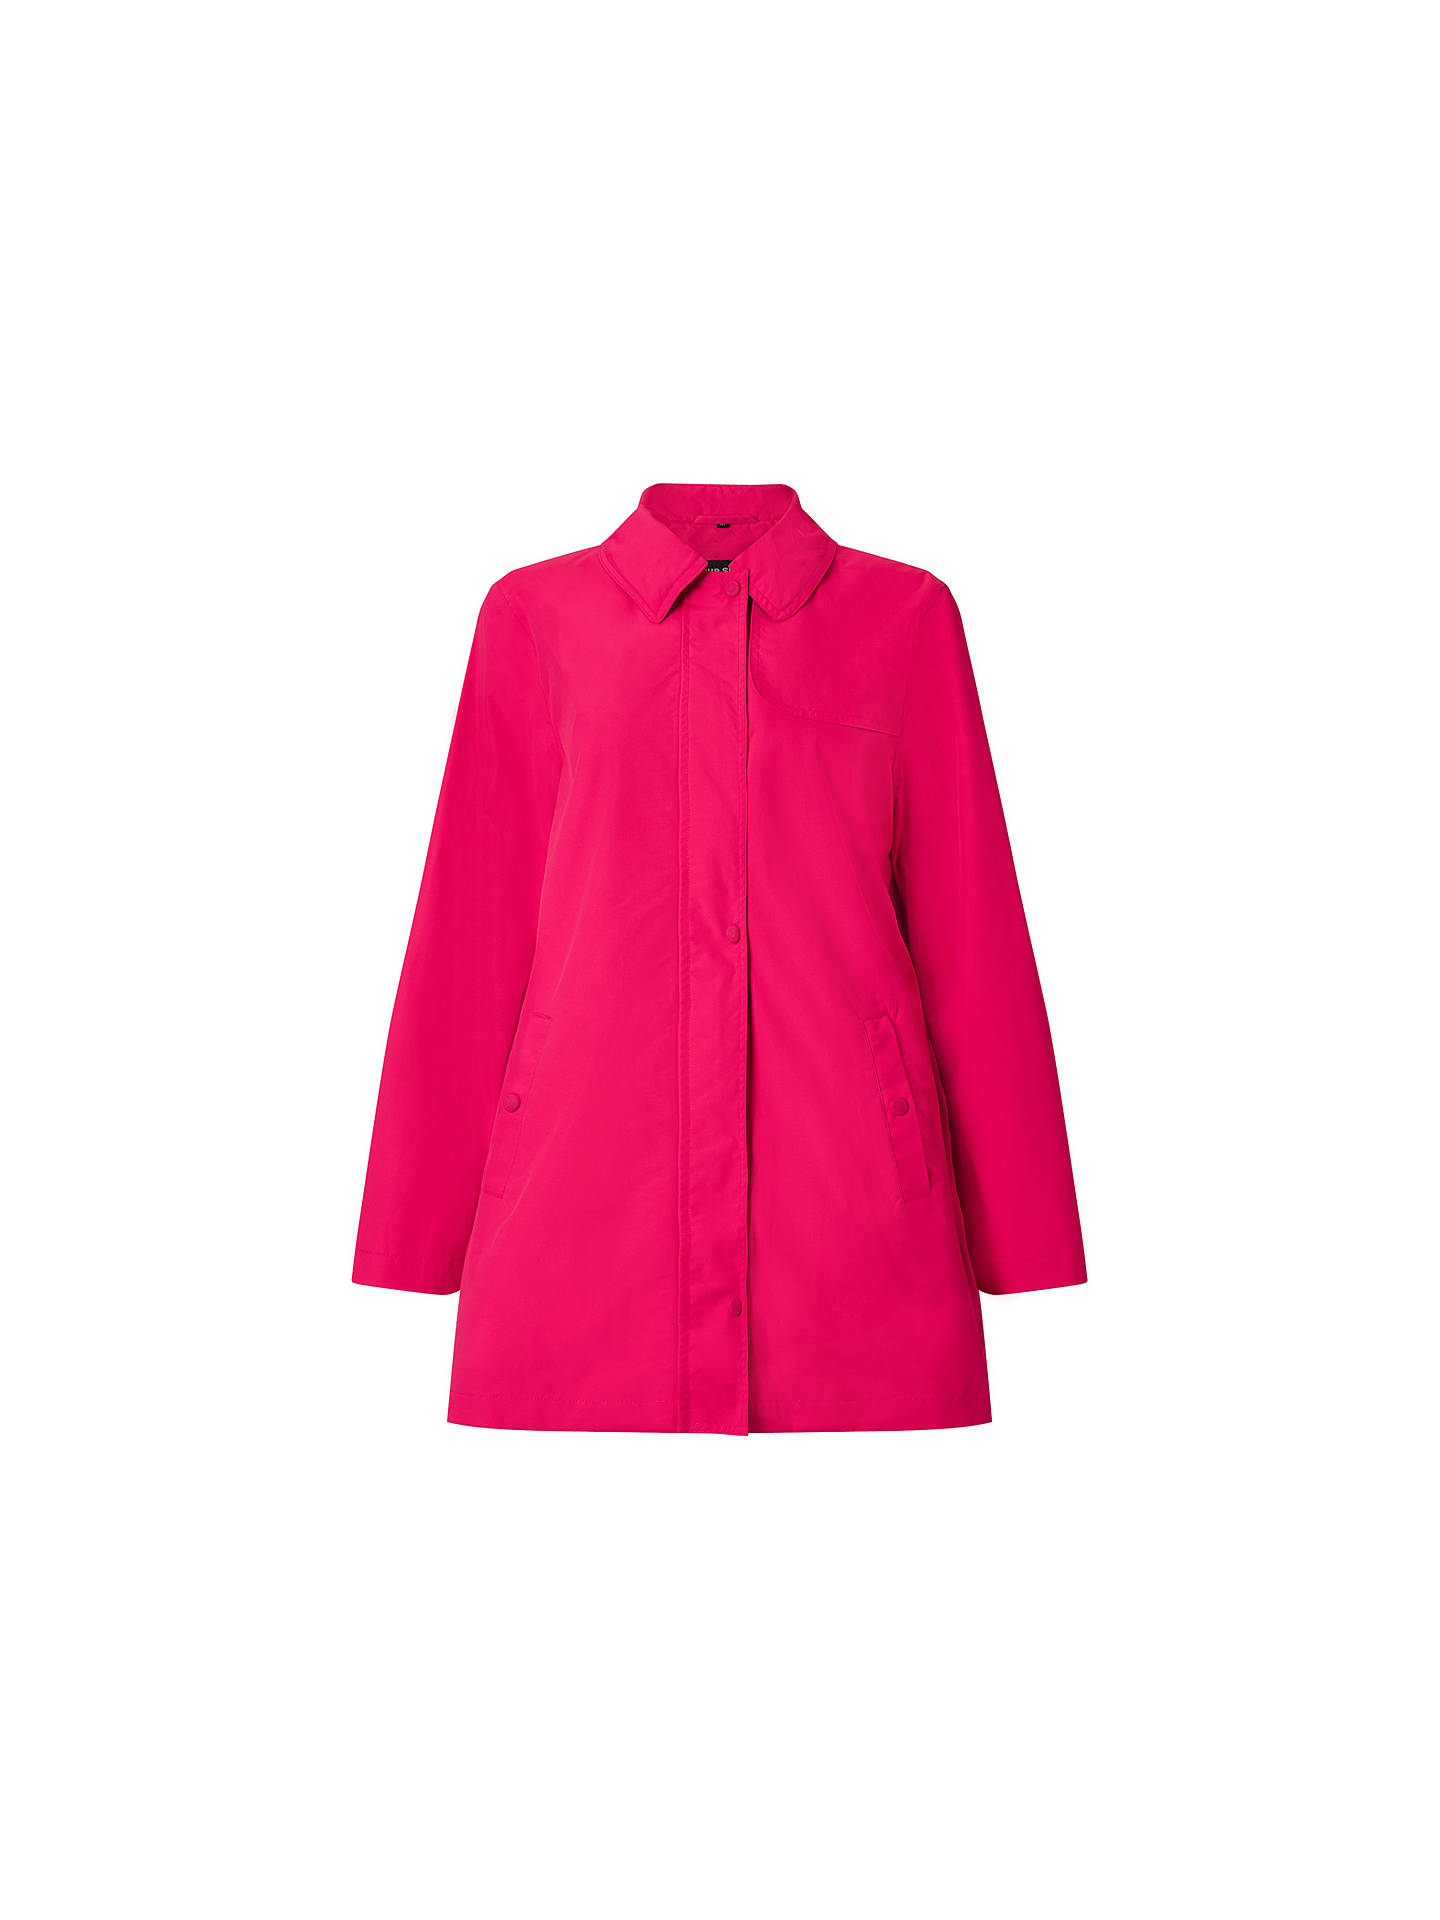 BuyFour Seasons Performance Jacket, Pink/Silver, M Online at johnlewis.com